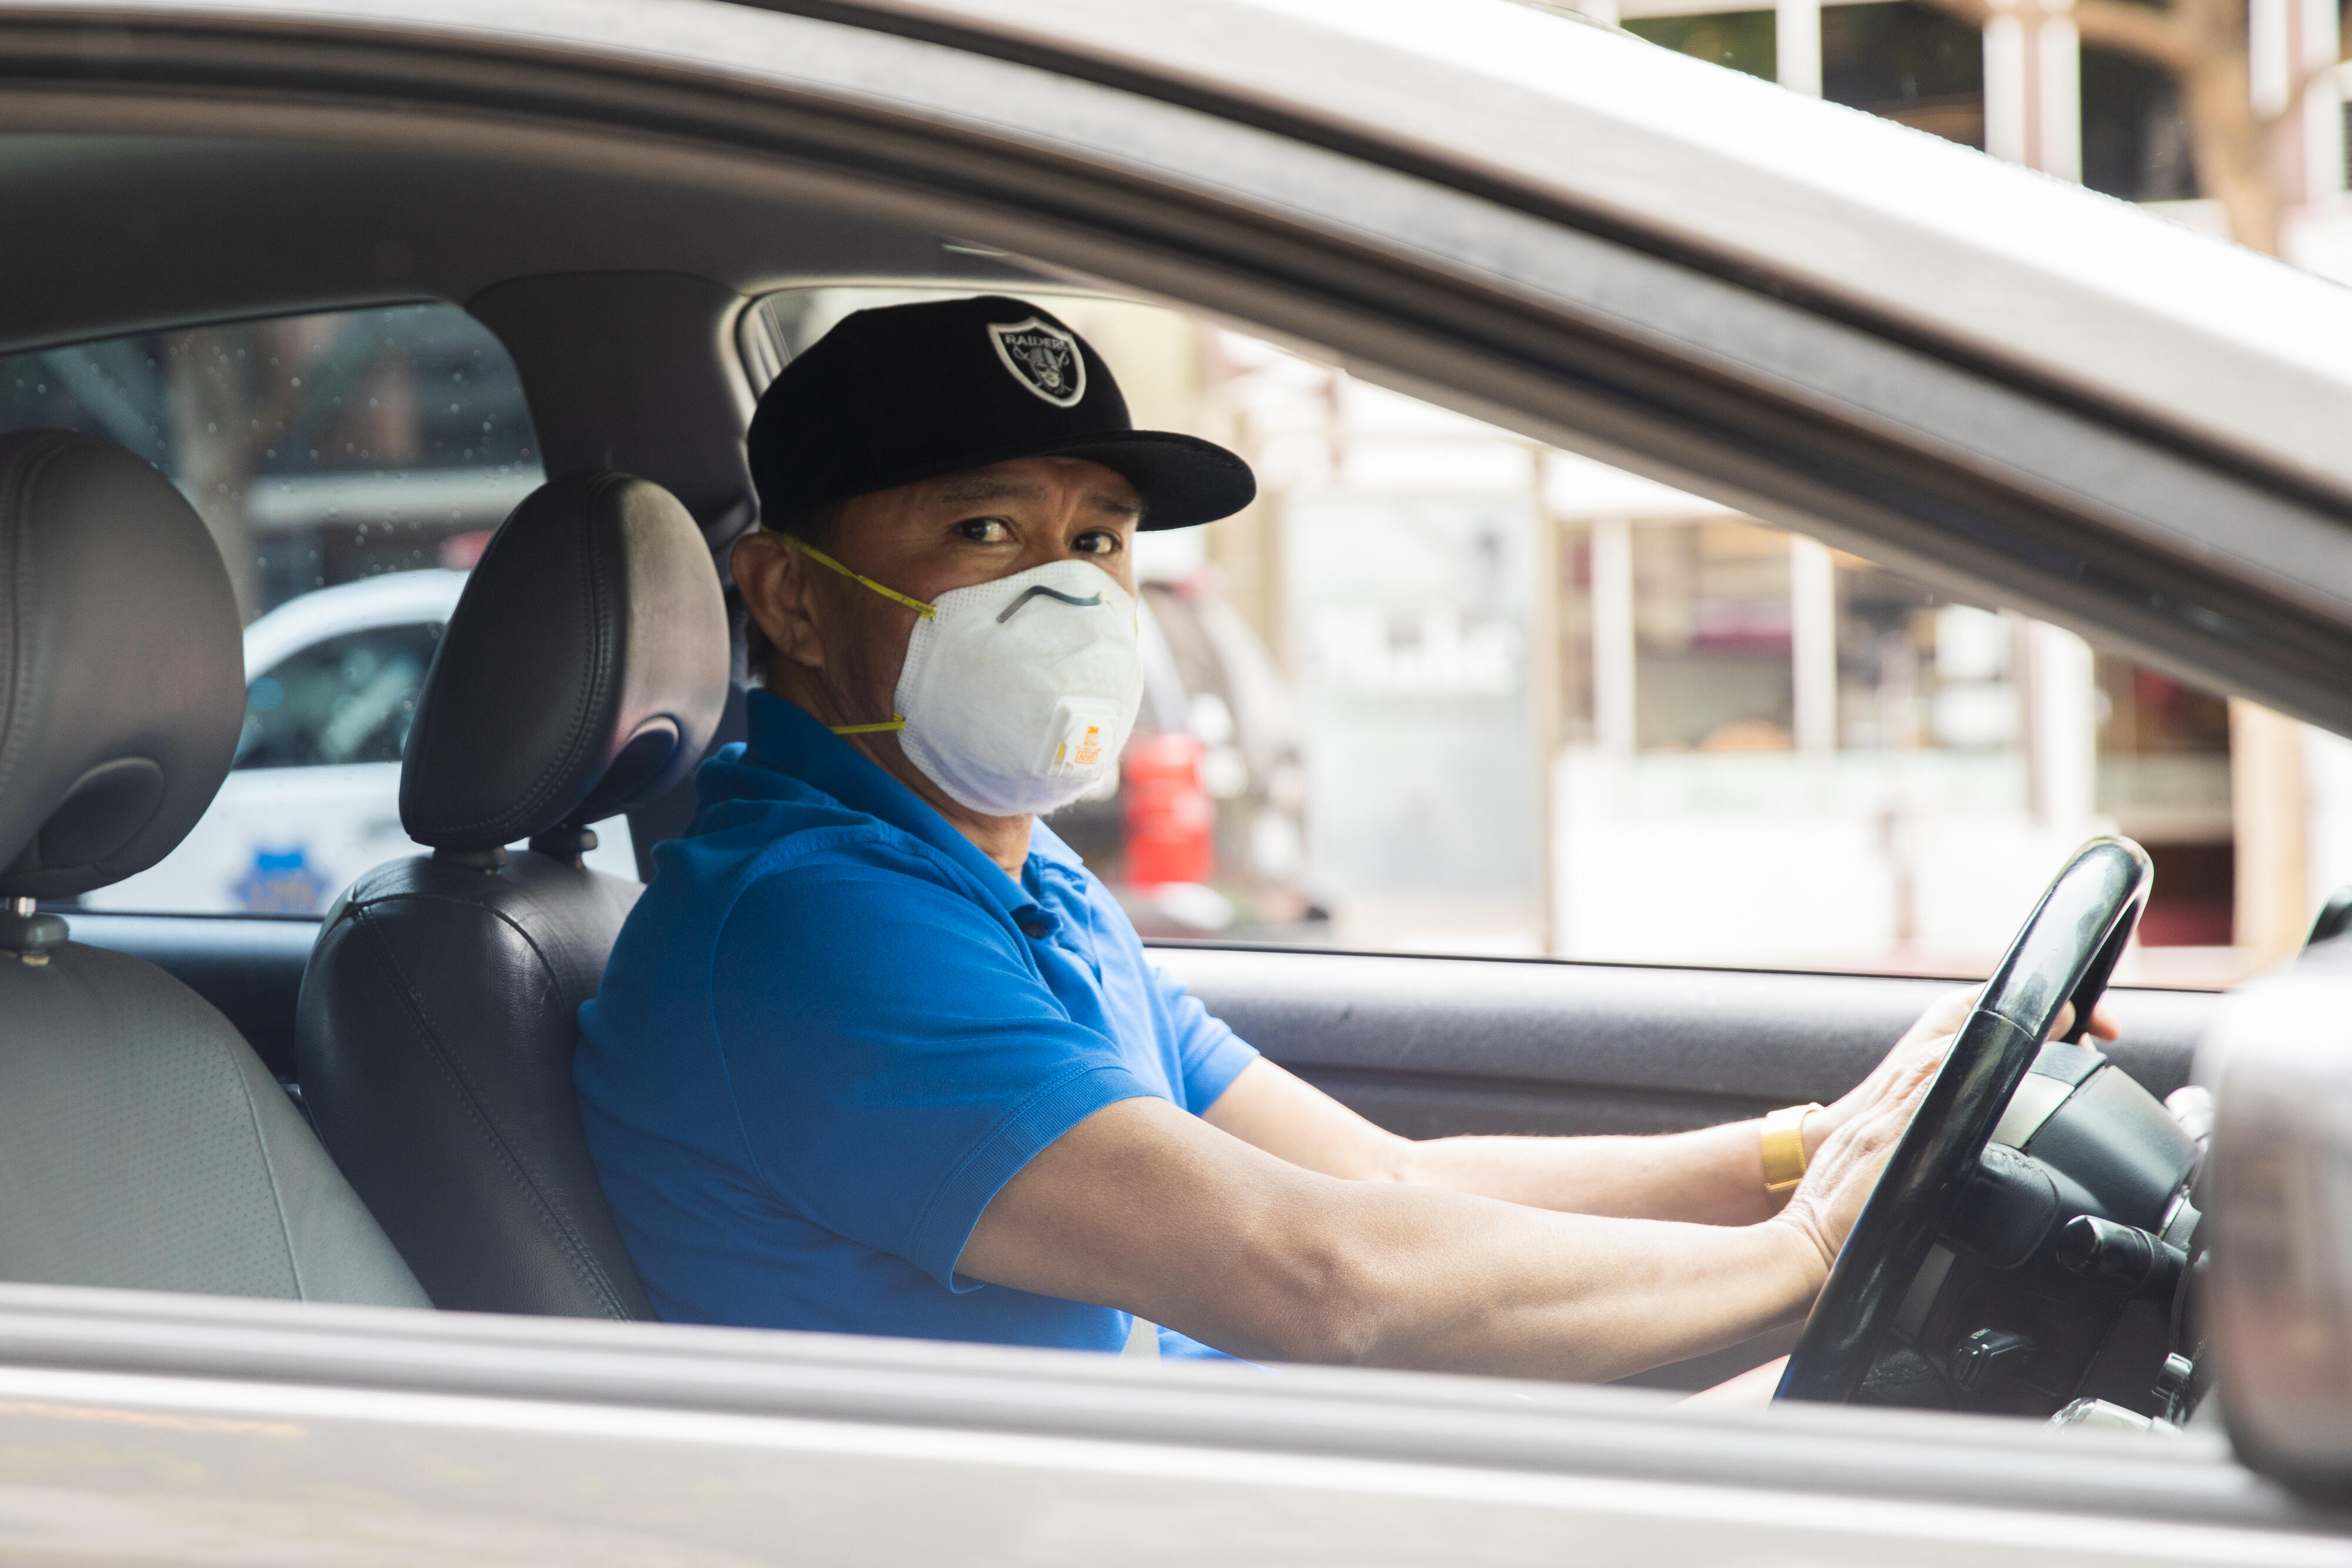 Uber may now require passengers to take a mask selfie before rides